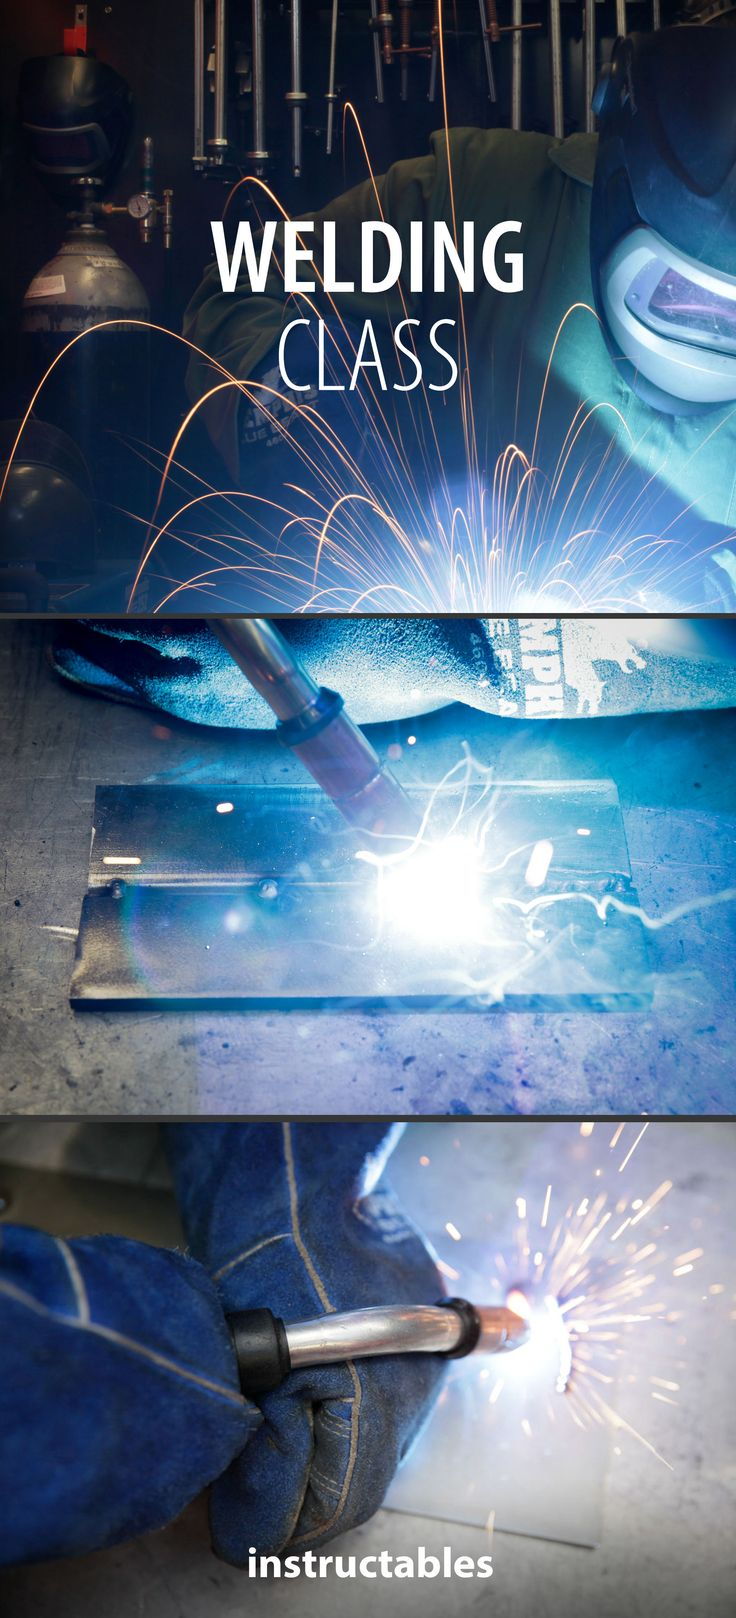 This class is designed for those who are completely new to welding but will also give others with experience some ideas and tips about how to become a more skilled welder that is ready to push their craft.